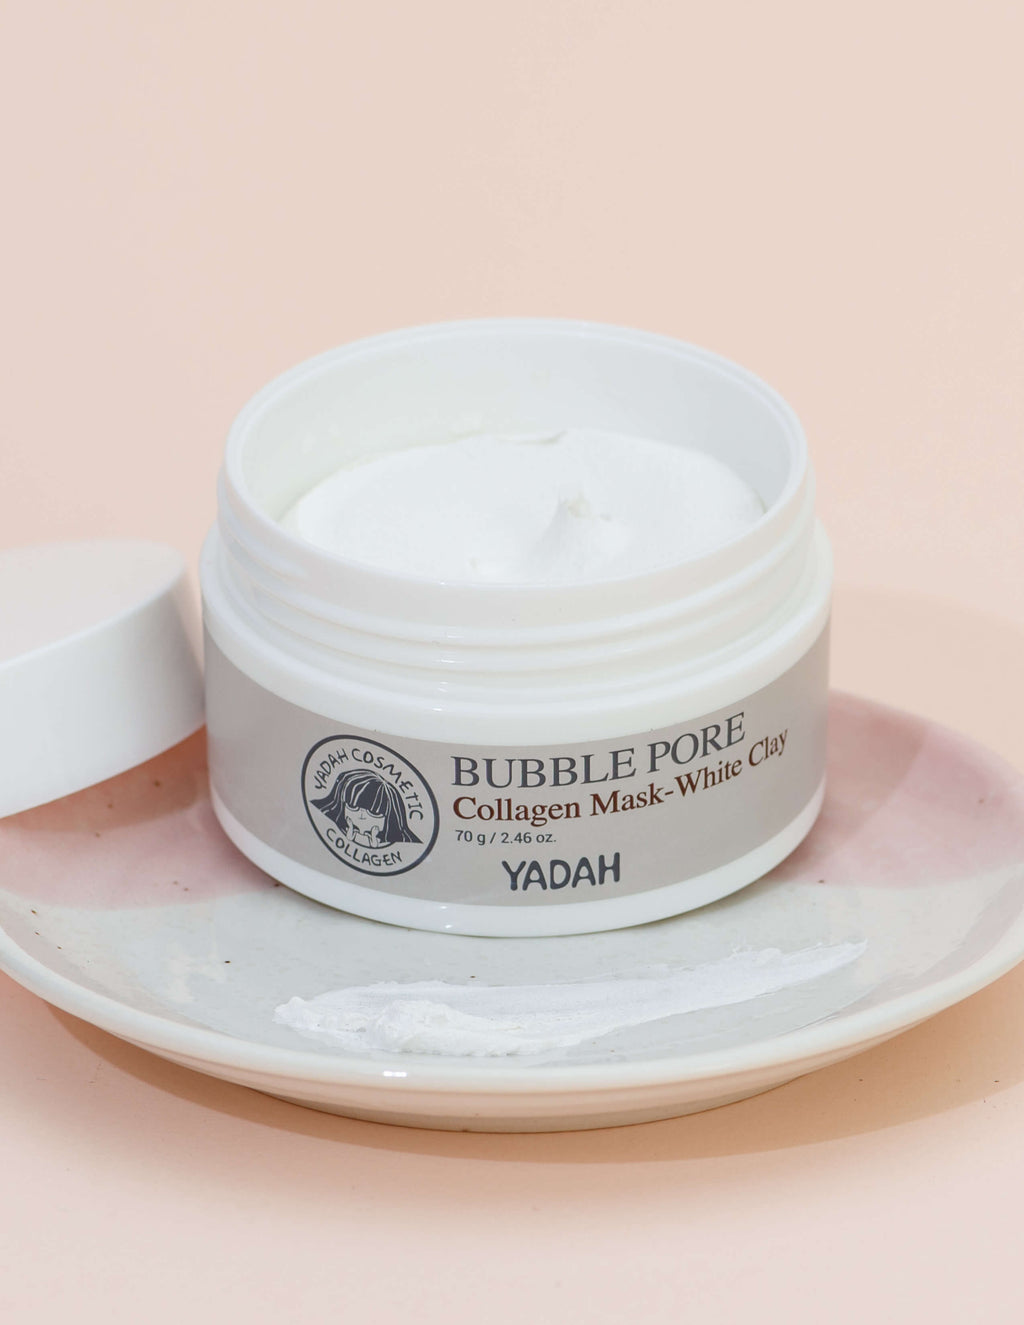 Bubble Pore Collagen Mask - White Clay 70g